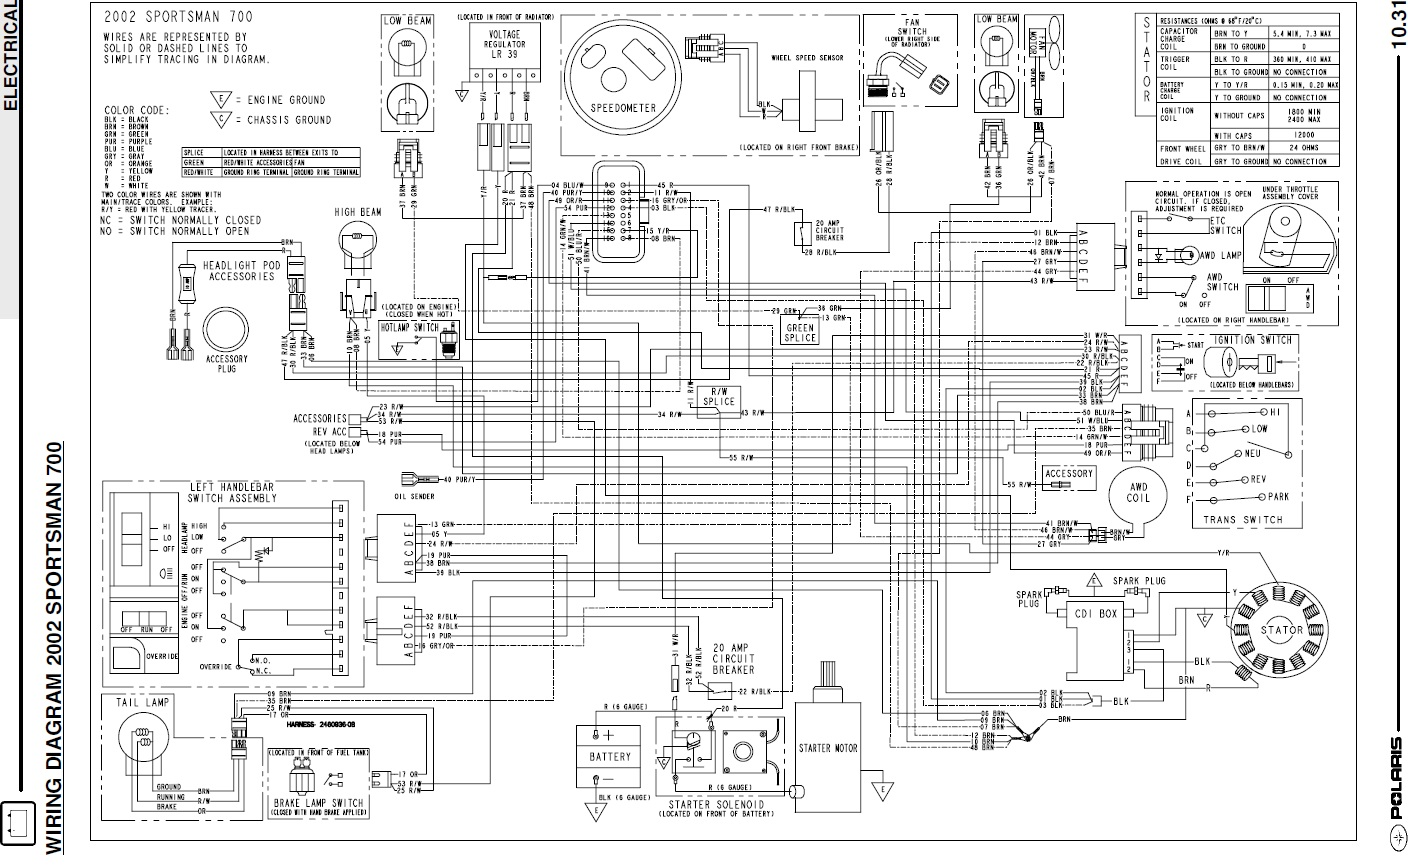 25374d1432945183 04 sportsman 700 no spark wiring diag 700 polaris rzr wiring diagram polaris solenoid wiring diagram \u2022 free 2013 polaris ranger wiring diagram at bakdesigns.co